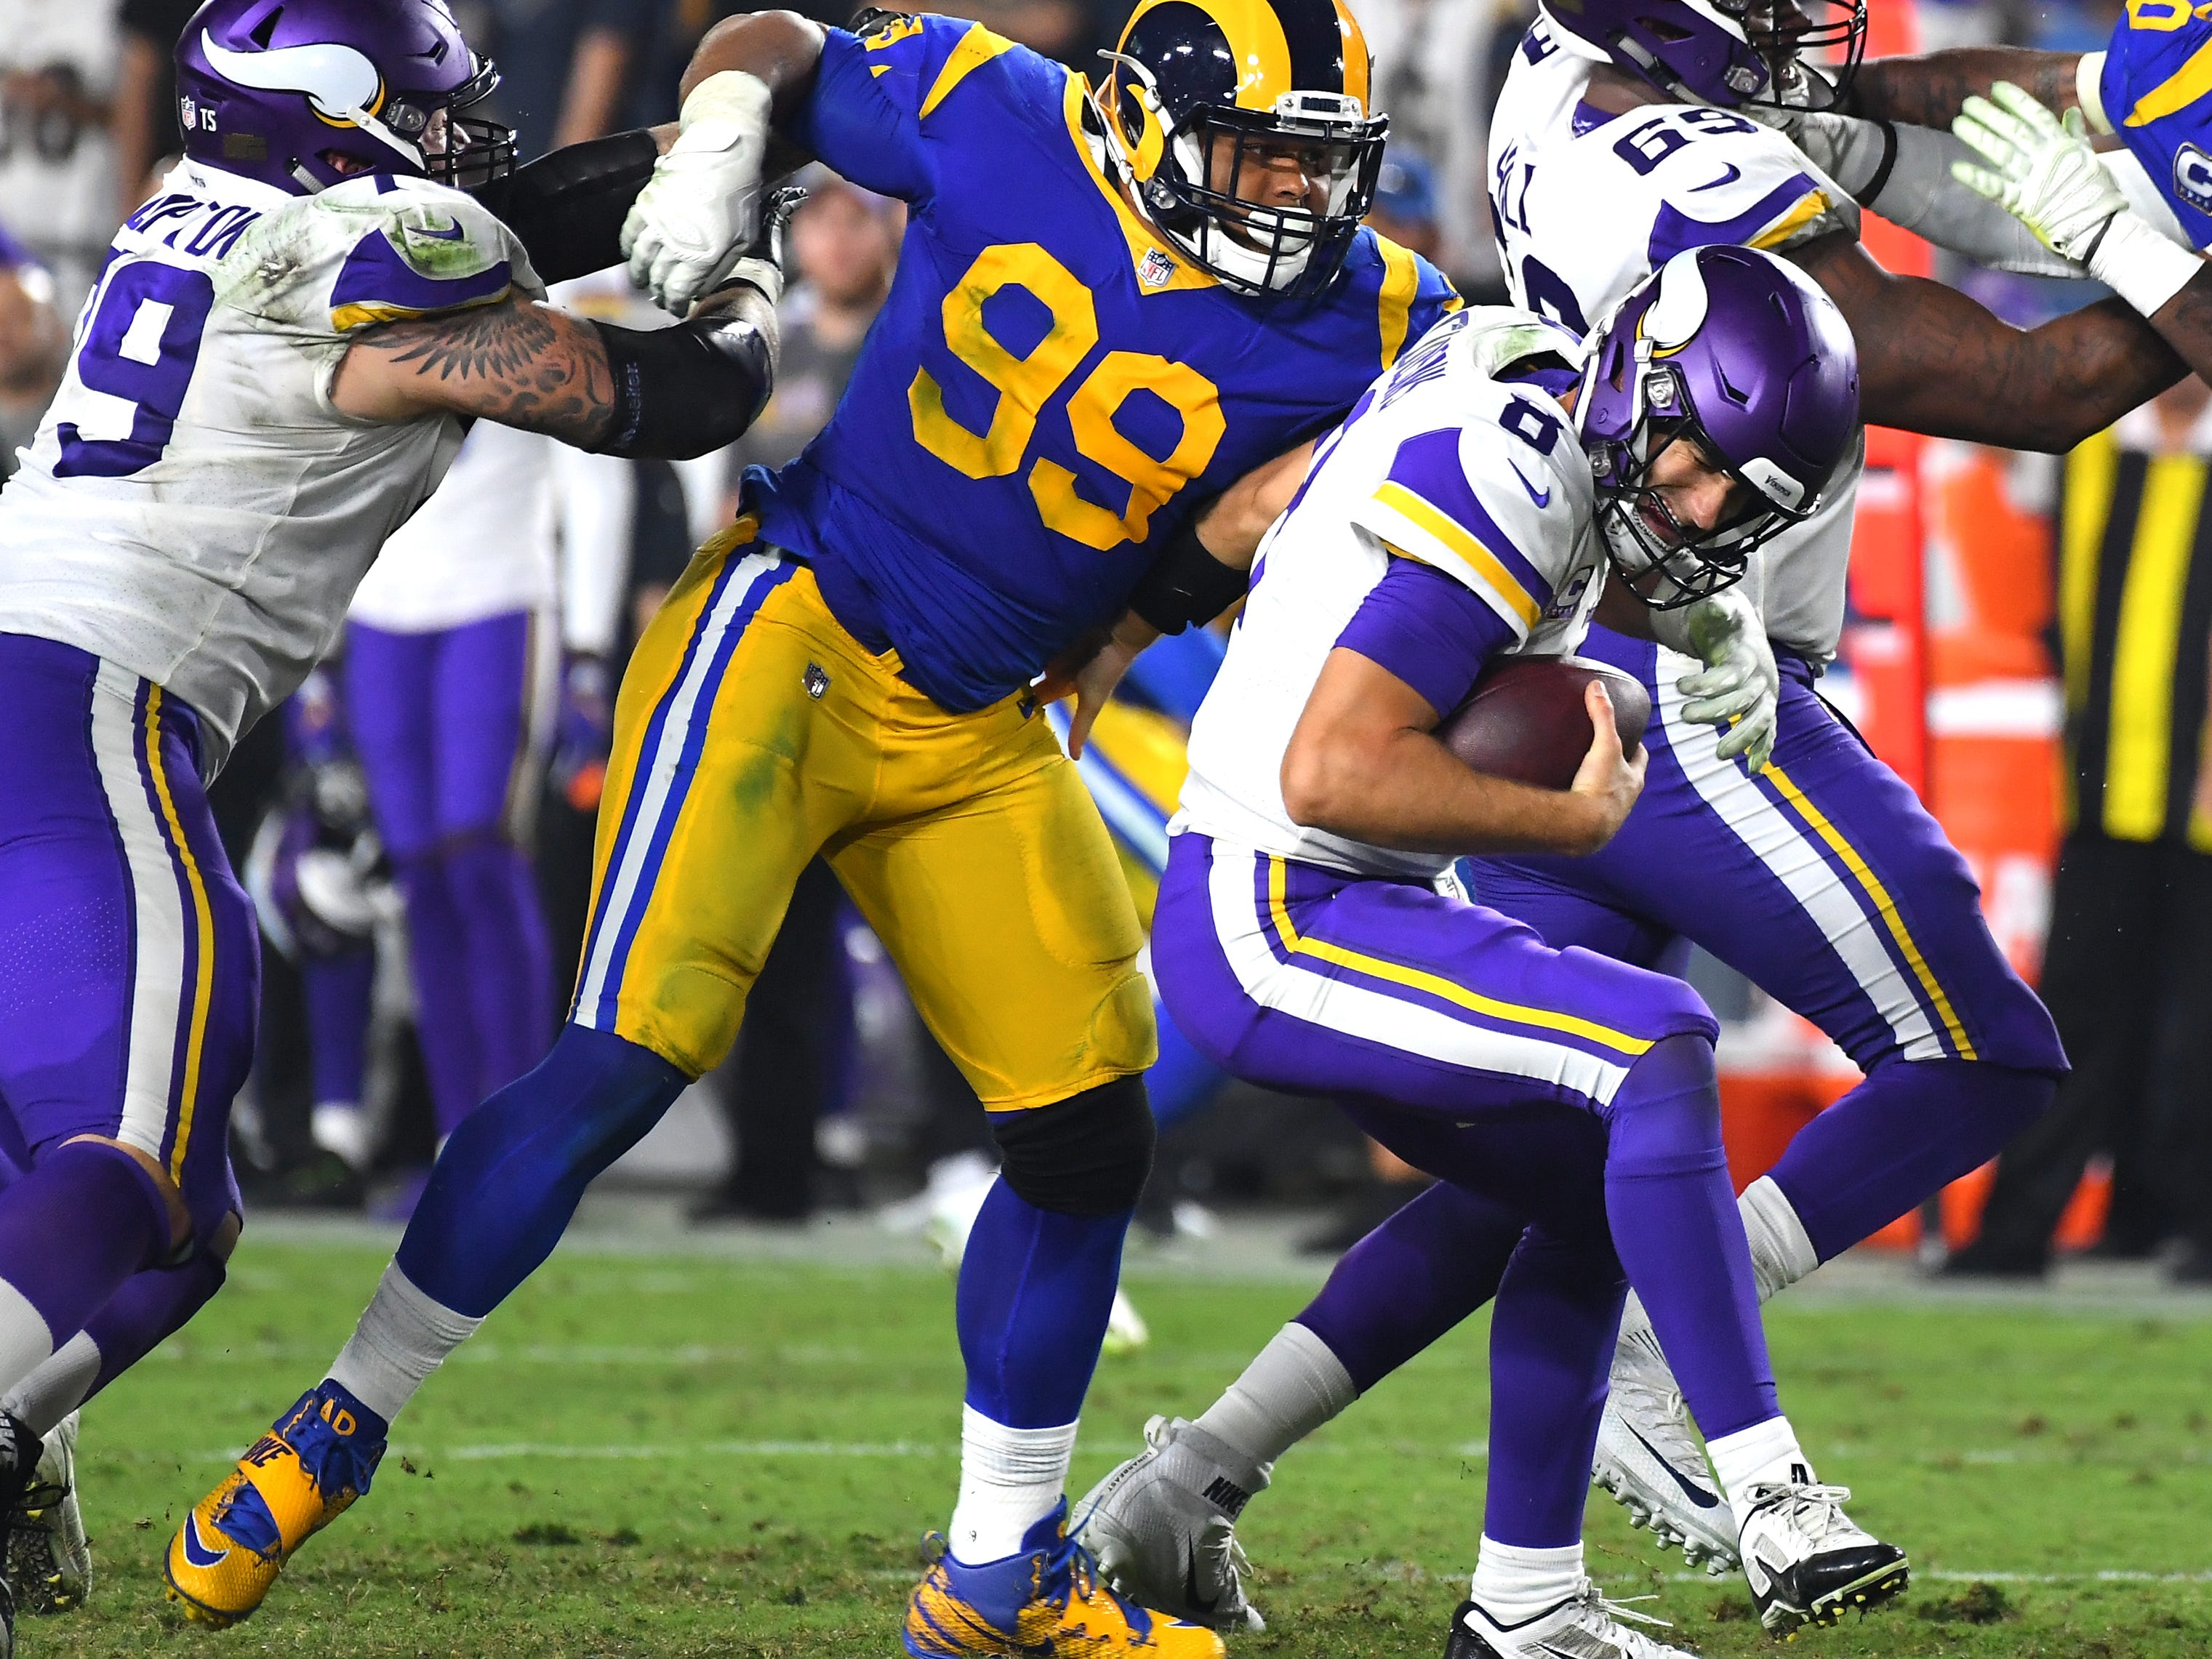 Minnesota Vikings quarterback Kirk Cousins scrambles in the pocket and avoids a sack by Los Angeles Rams defensive tackle Aaron Donald.